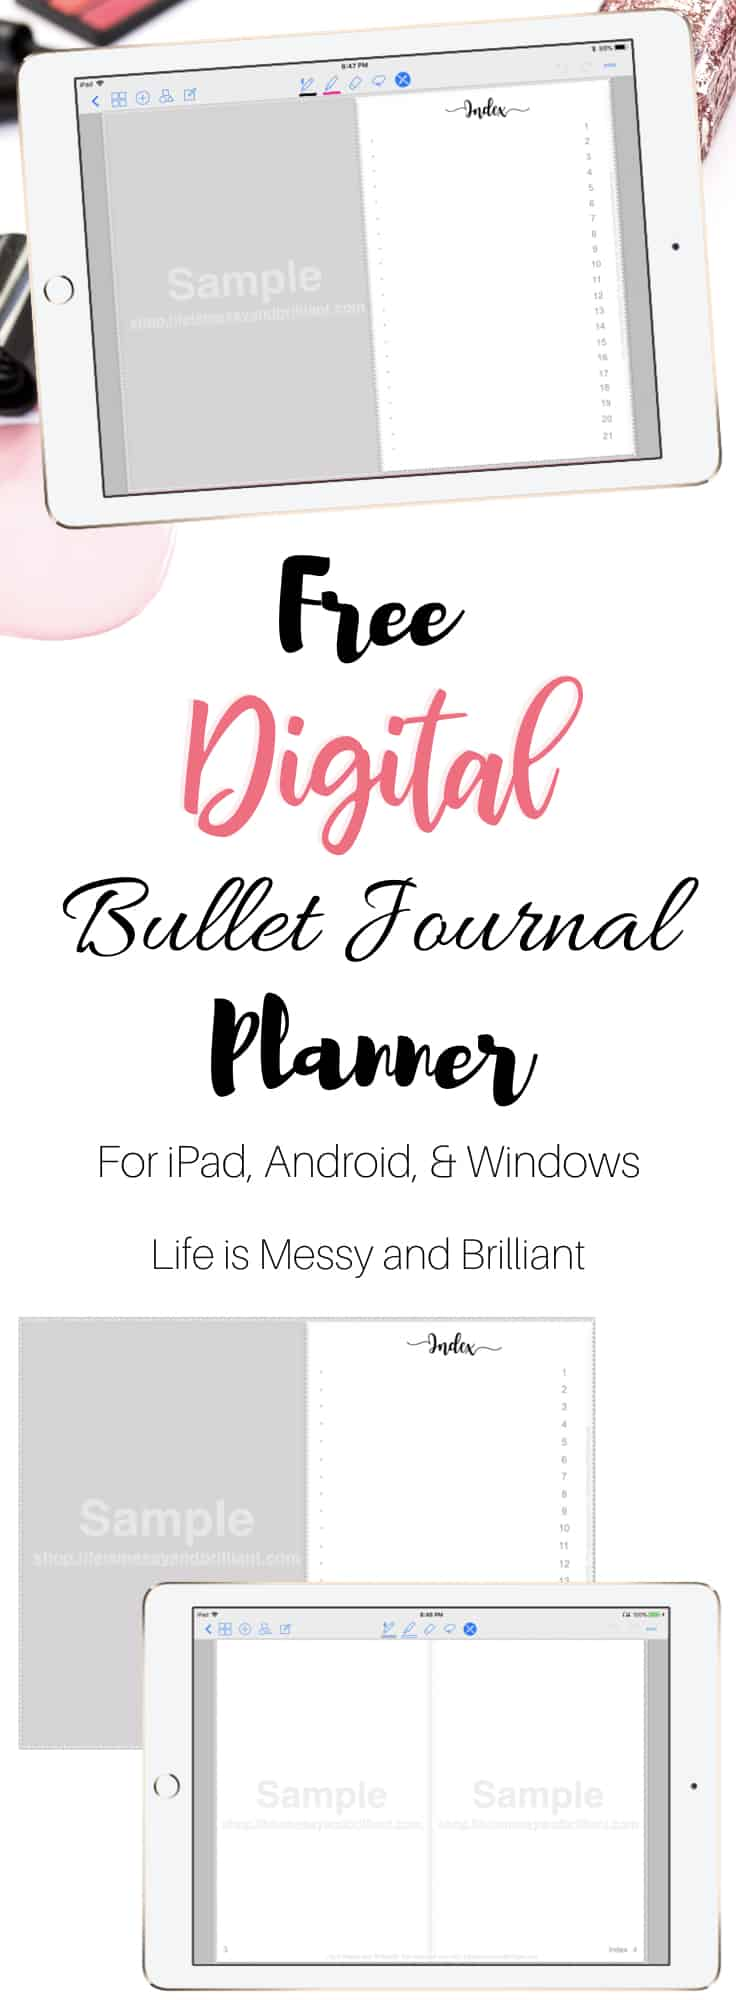 picture regarding Digital Planners and Organizers referred to as Absolutely free Electronic Planner with One-way links